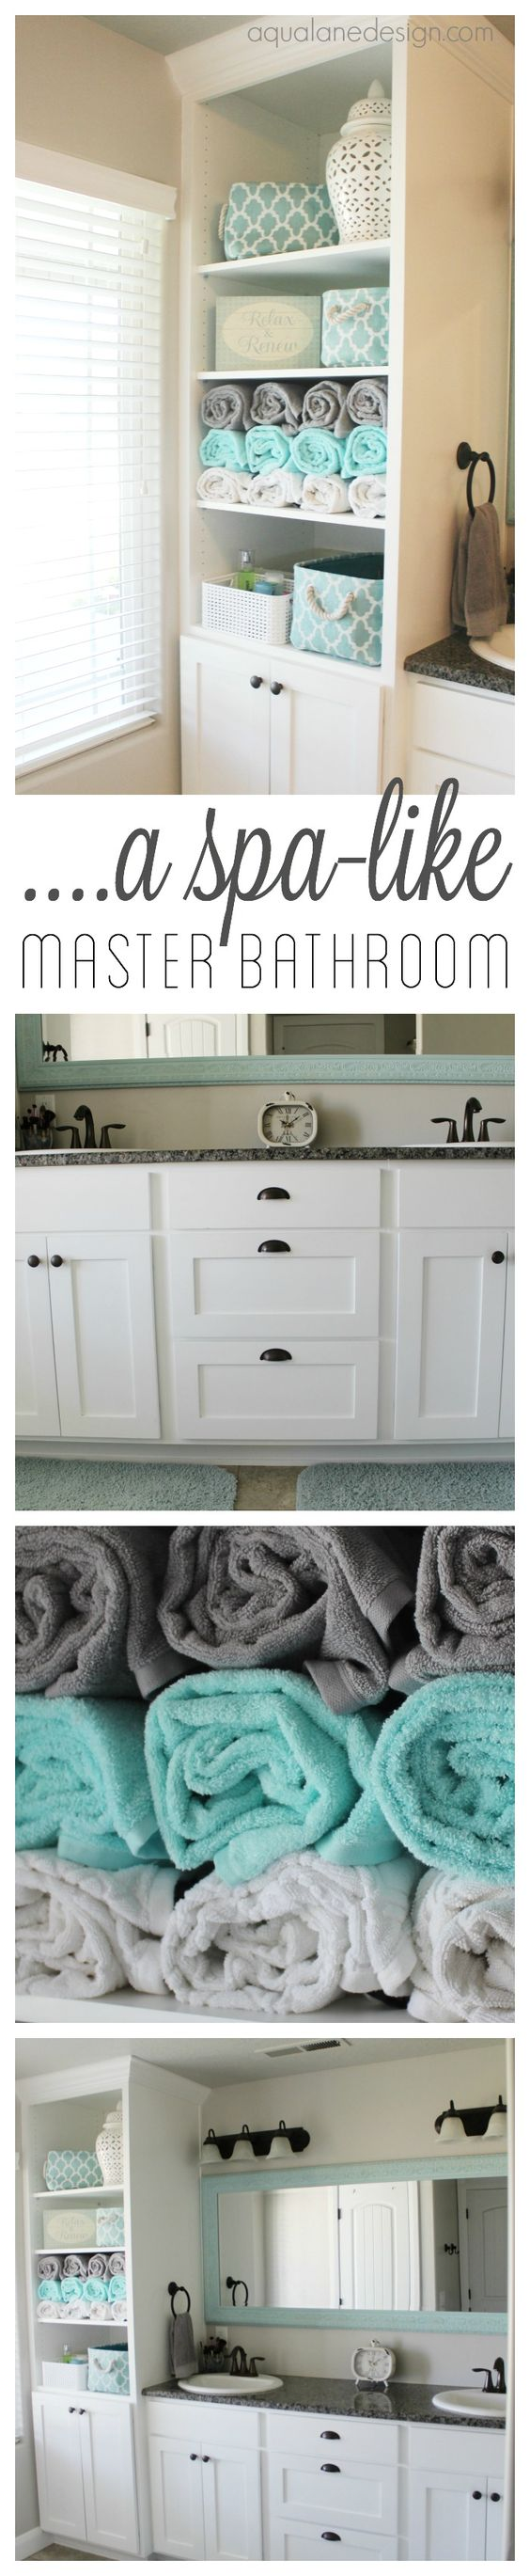 The best images about bathroom on pinterest cream bathroom